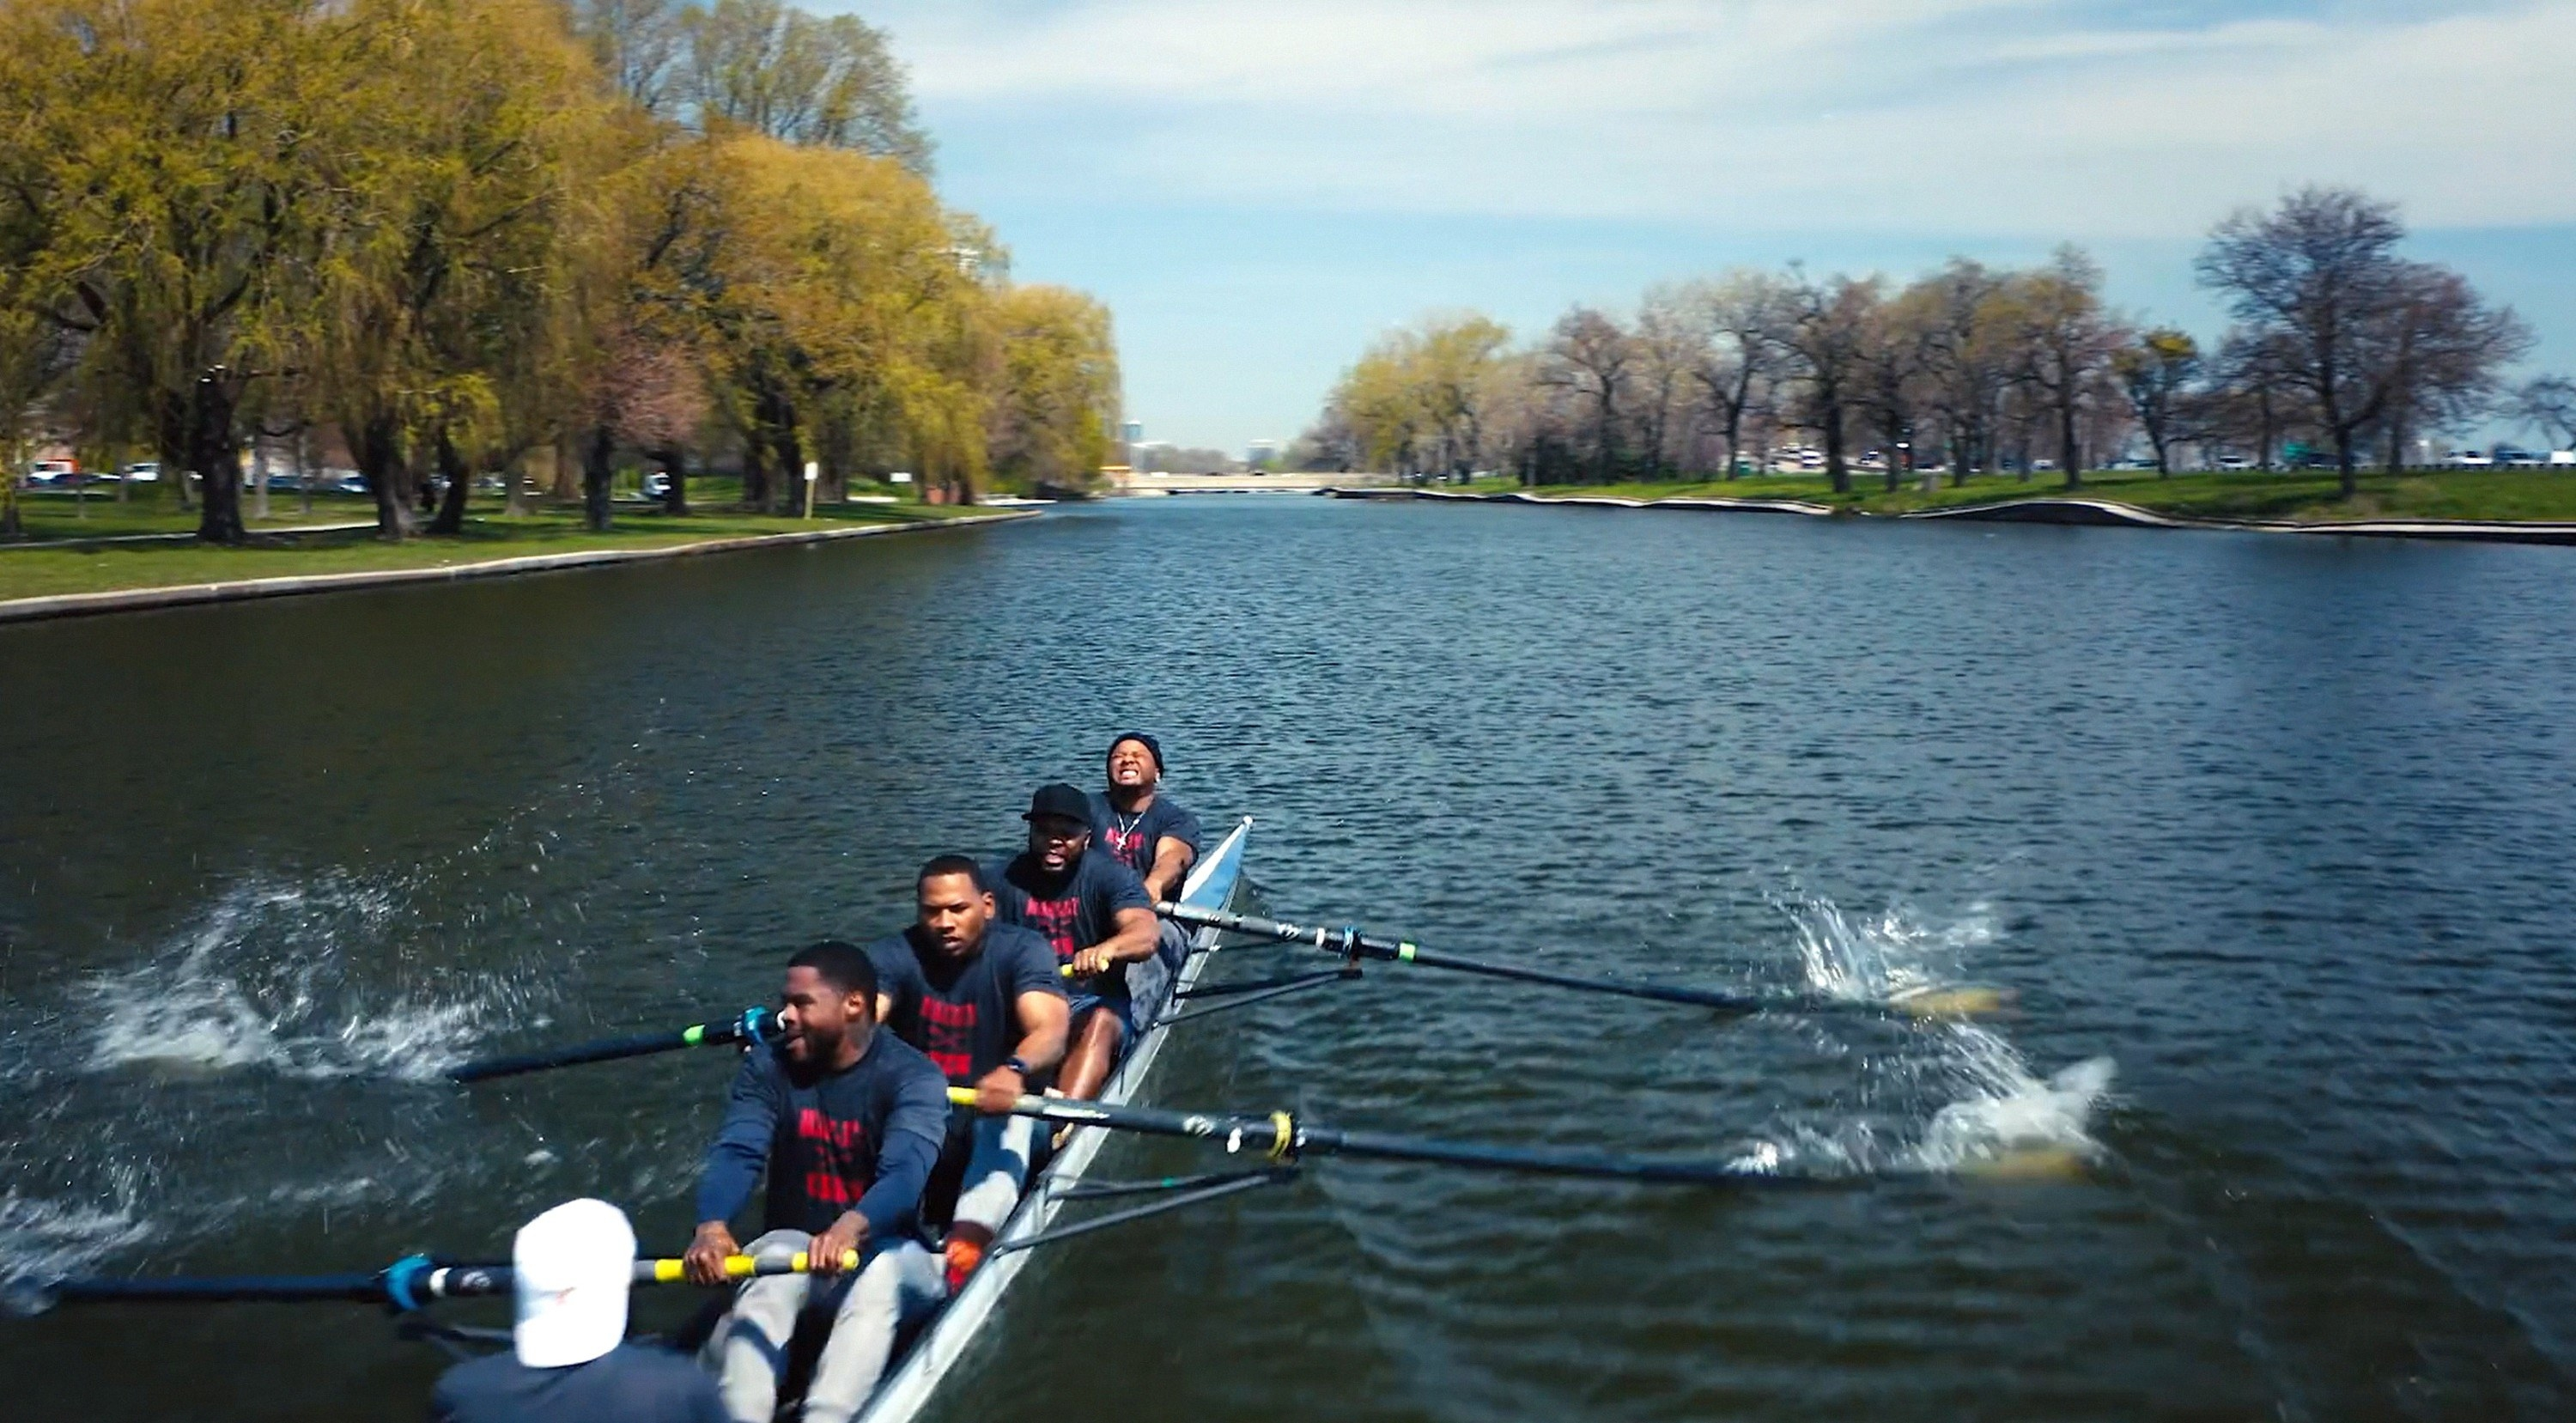 The Manley High rowing team rowing in the lake